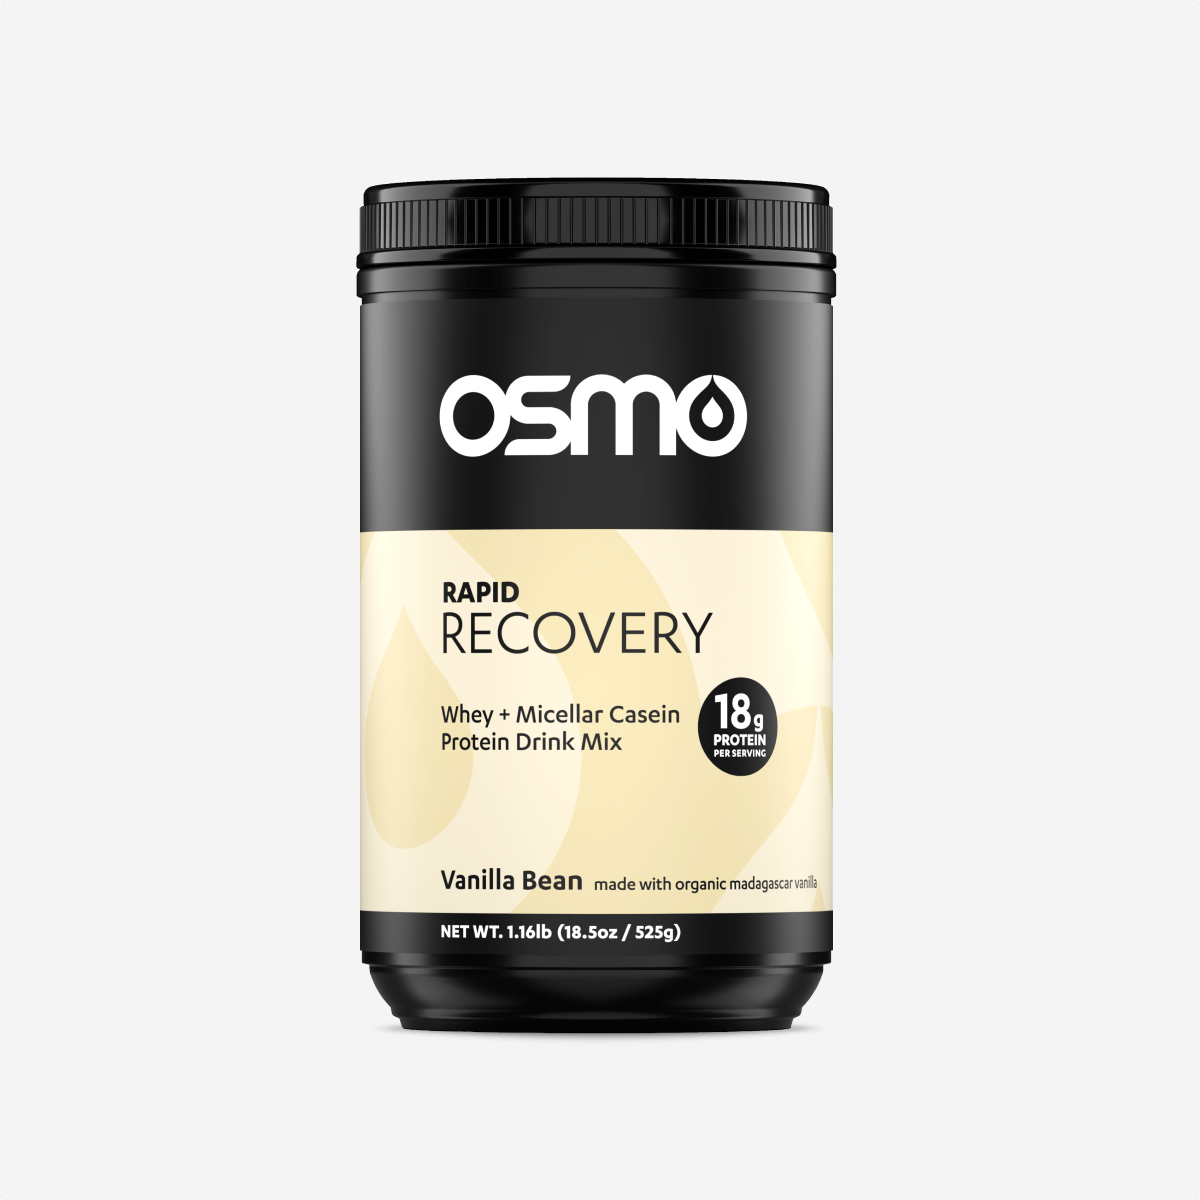 The Vanilla Bean flavor of Osmo's Recovery product features a neutral color scheme.